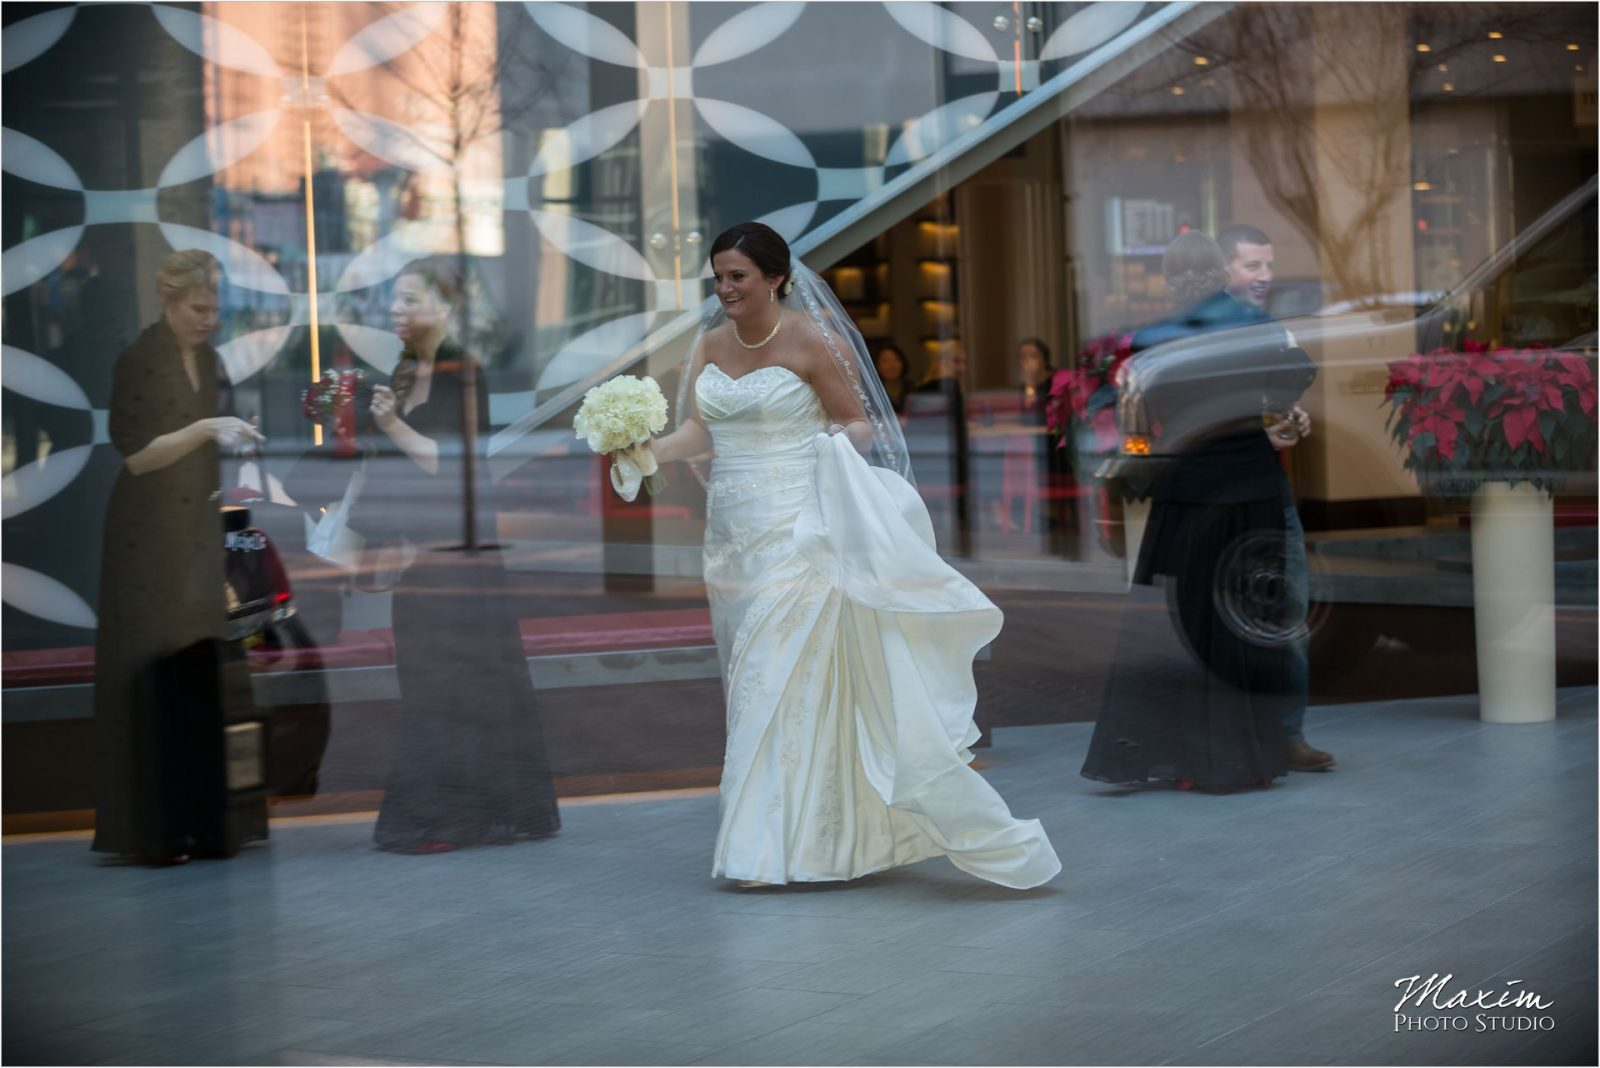 Hyatt Cincinnati Wedding Pictures